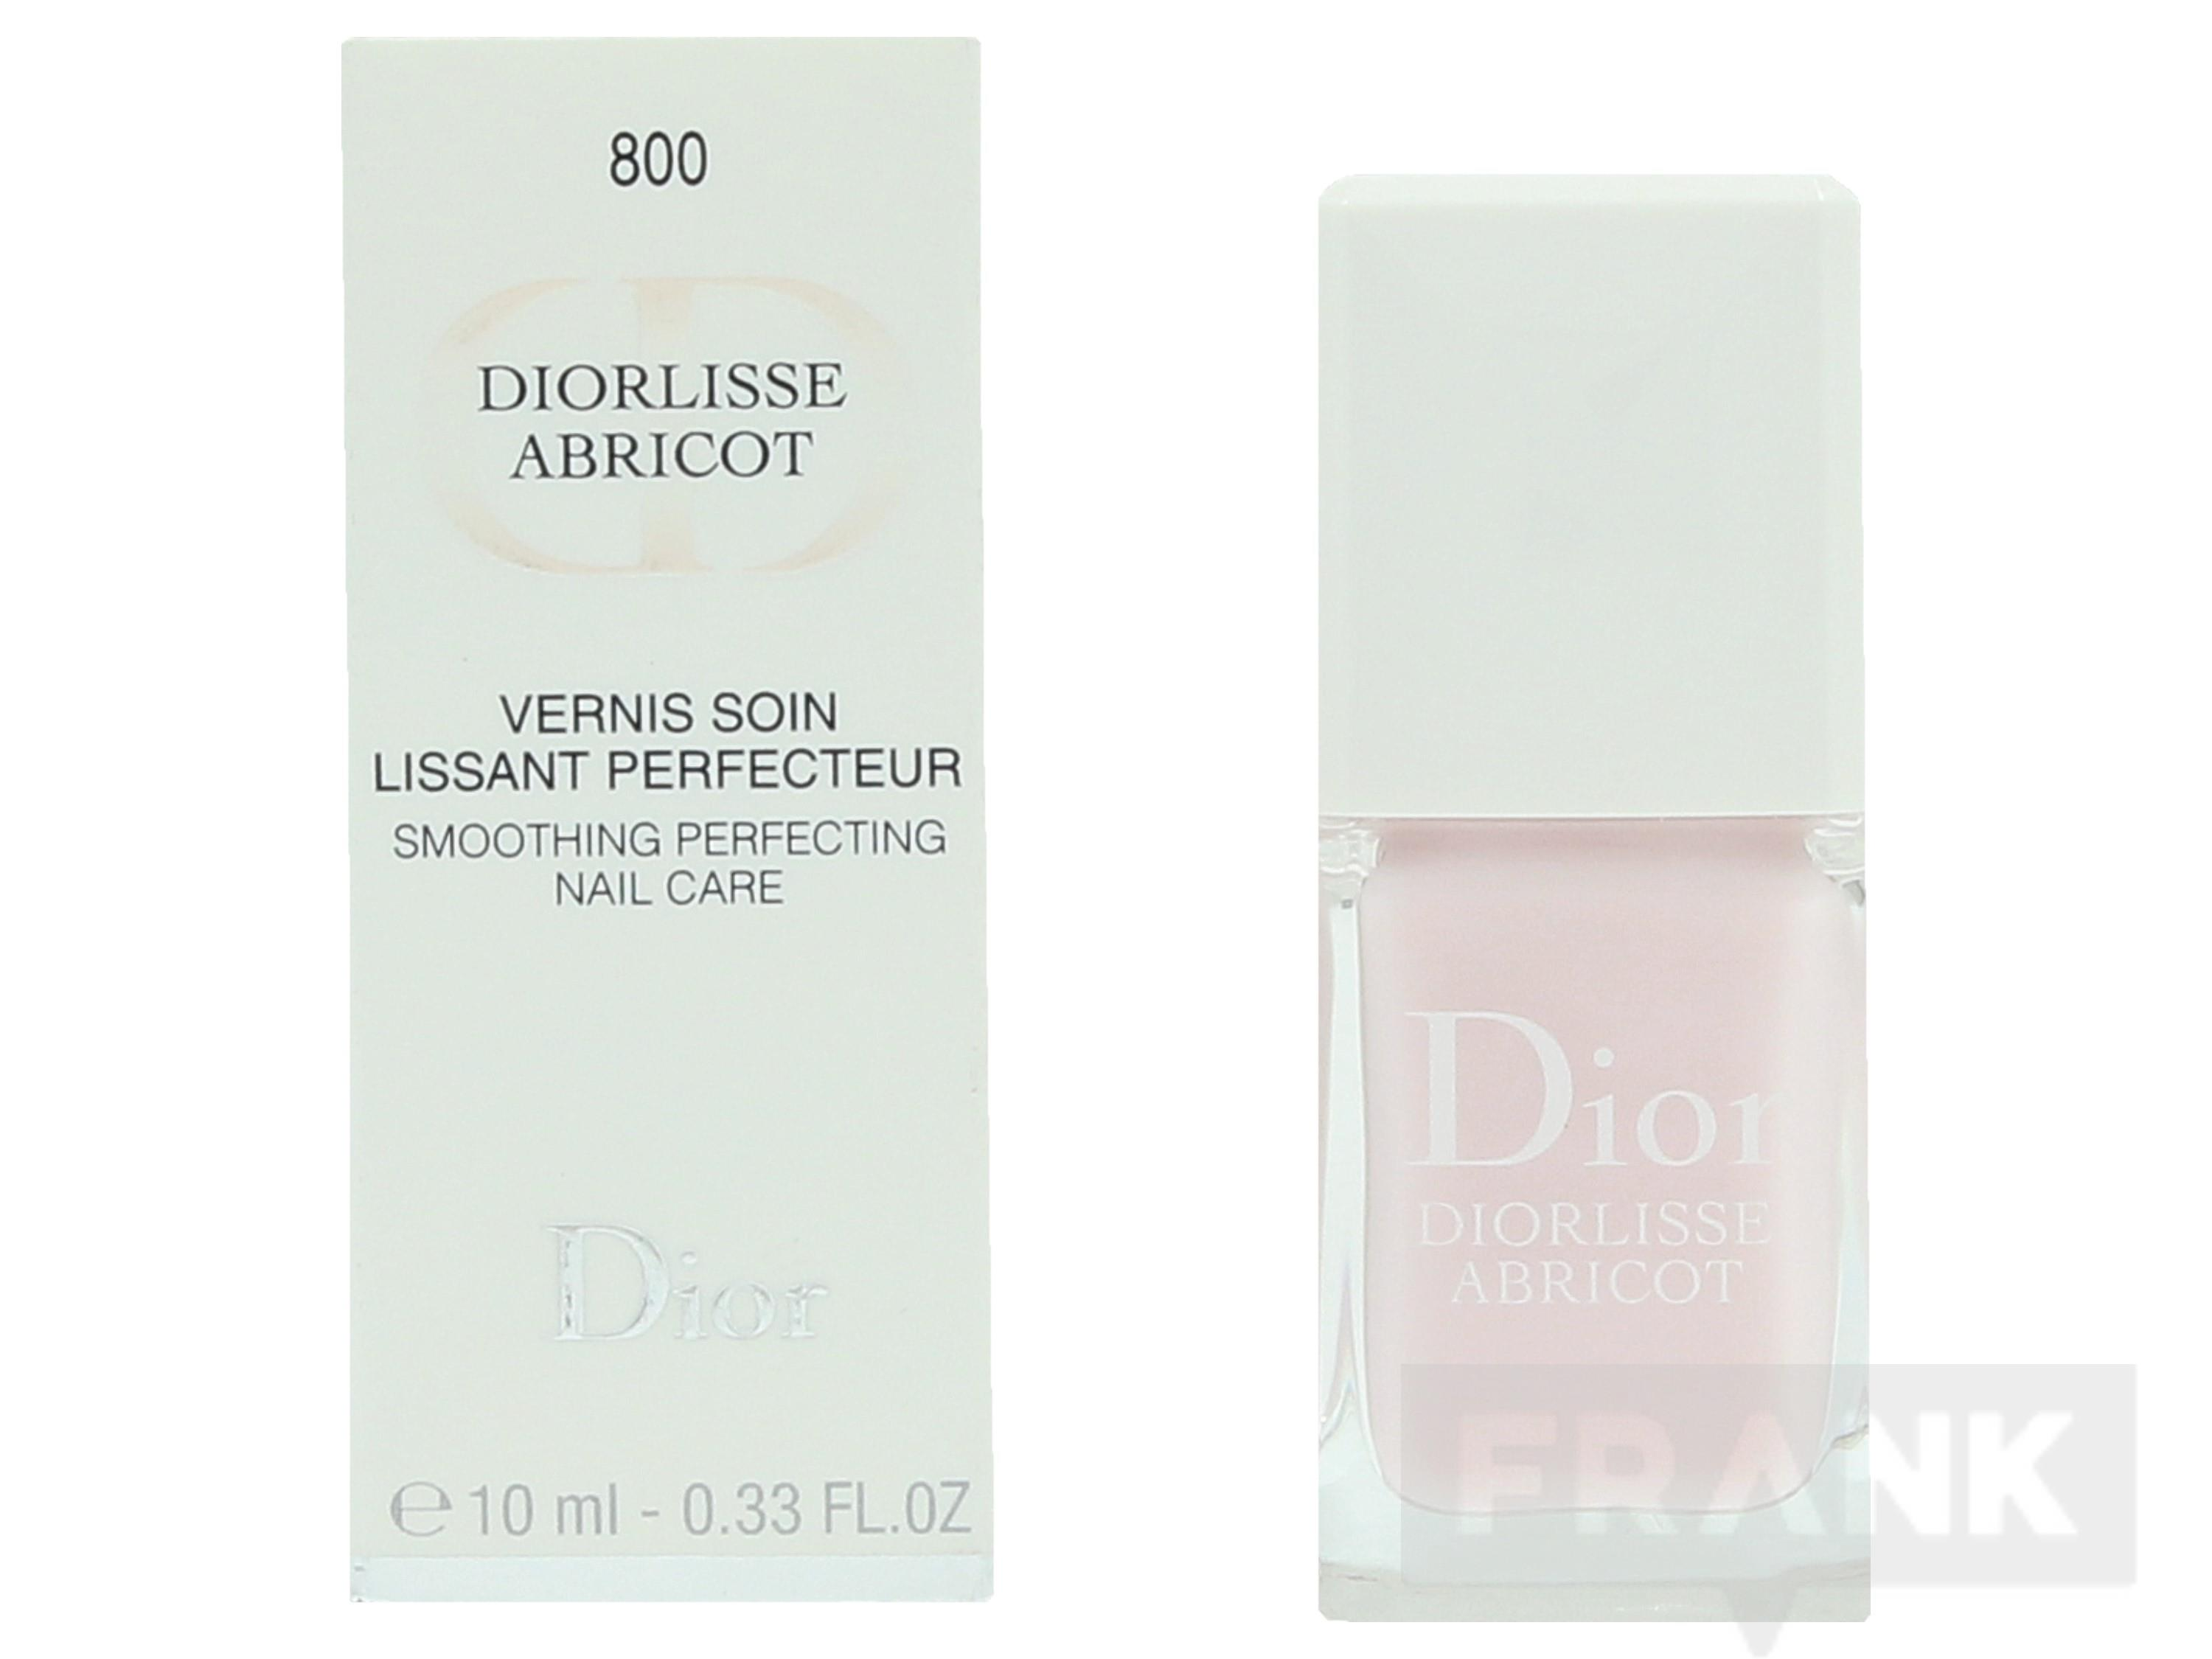 C.Dior Diorlisse Abricot Smoothing Perf. Nail Care 10ml